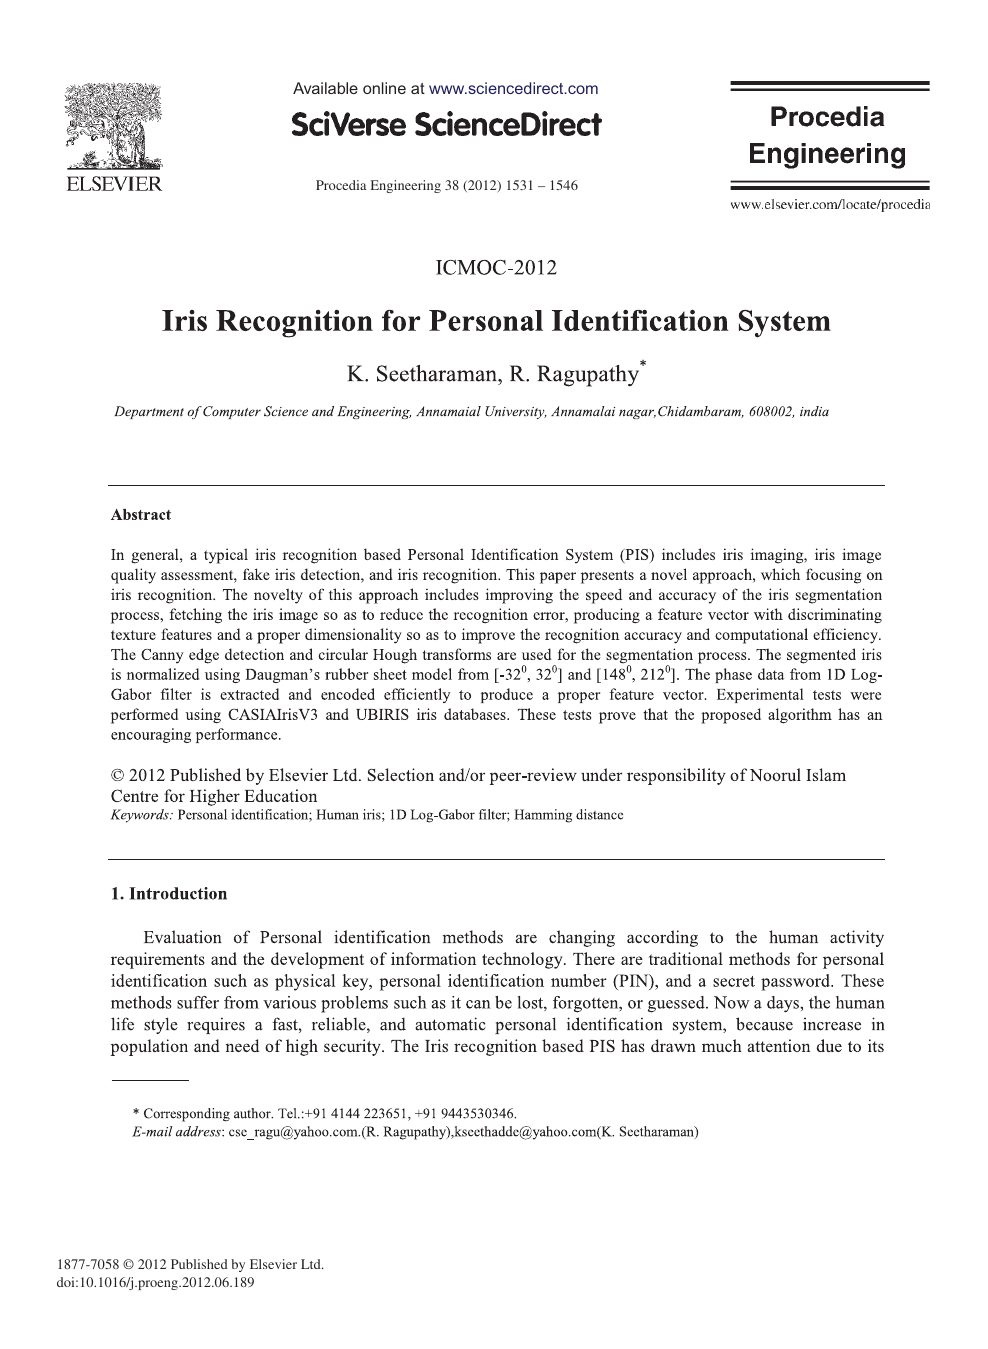 Iris Recognition for Personal Identification System – topic